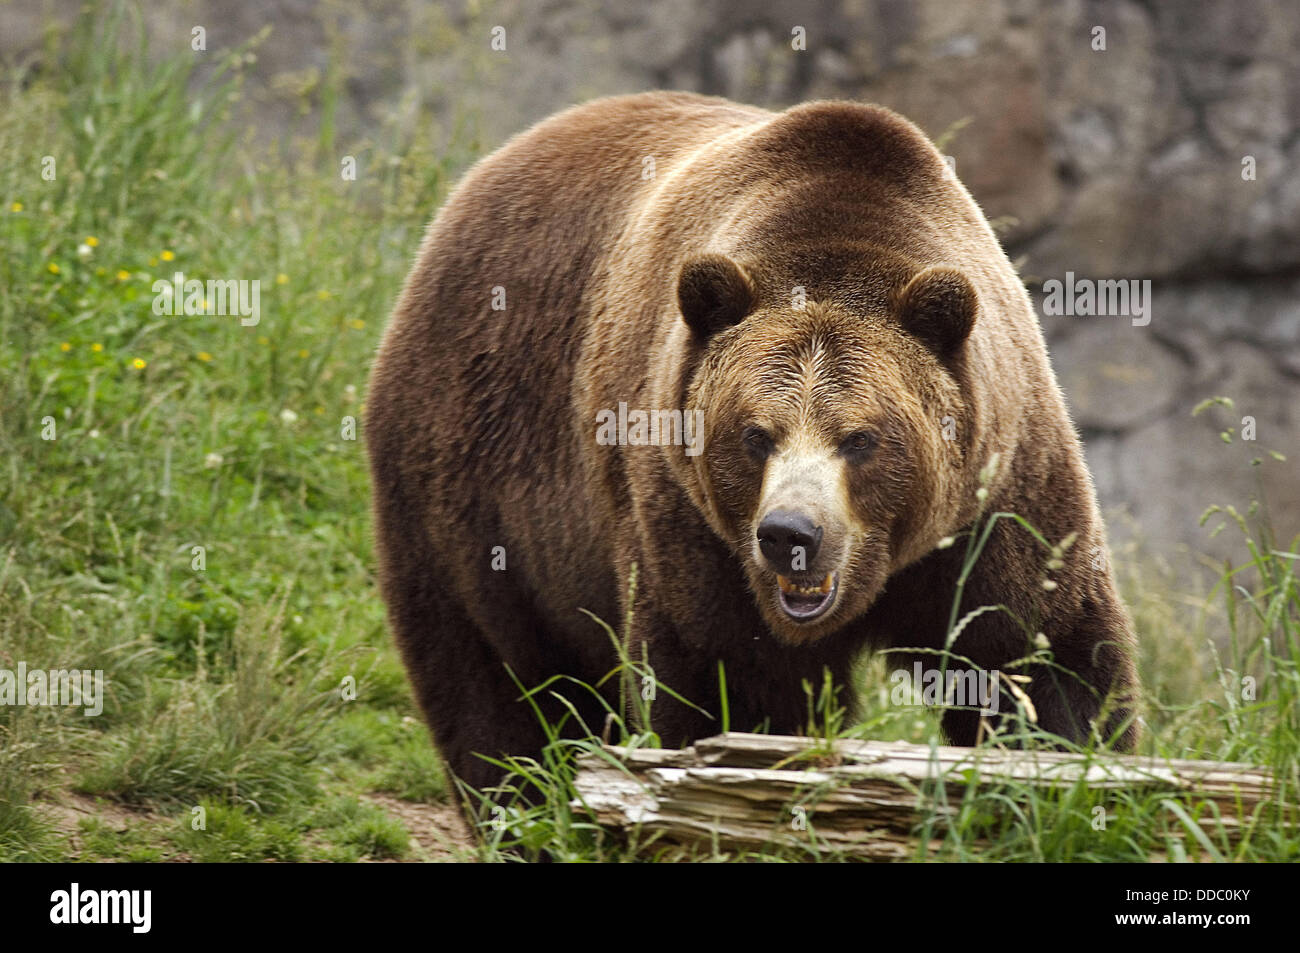 A charging grizzly bear is a frightening sight - Stock Image